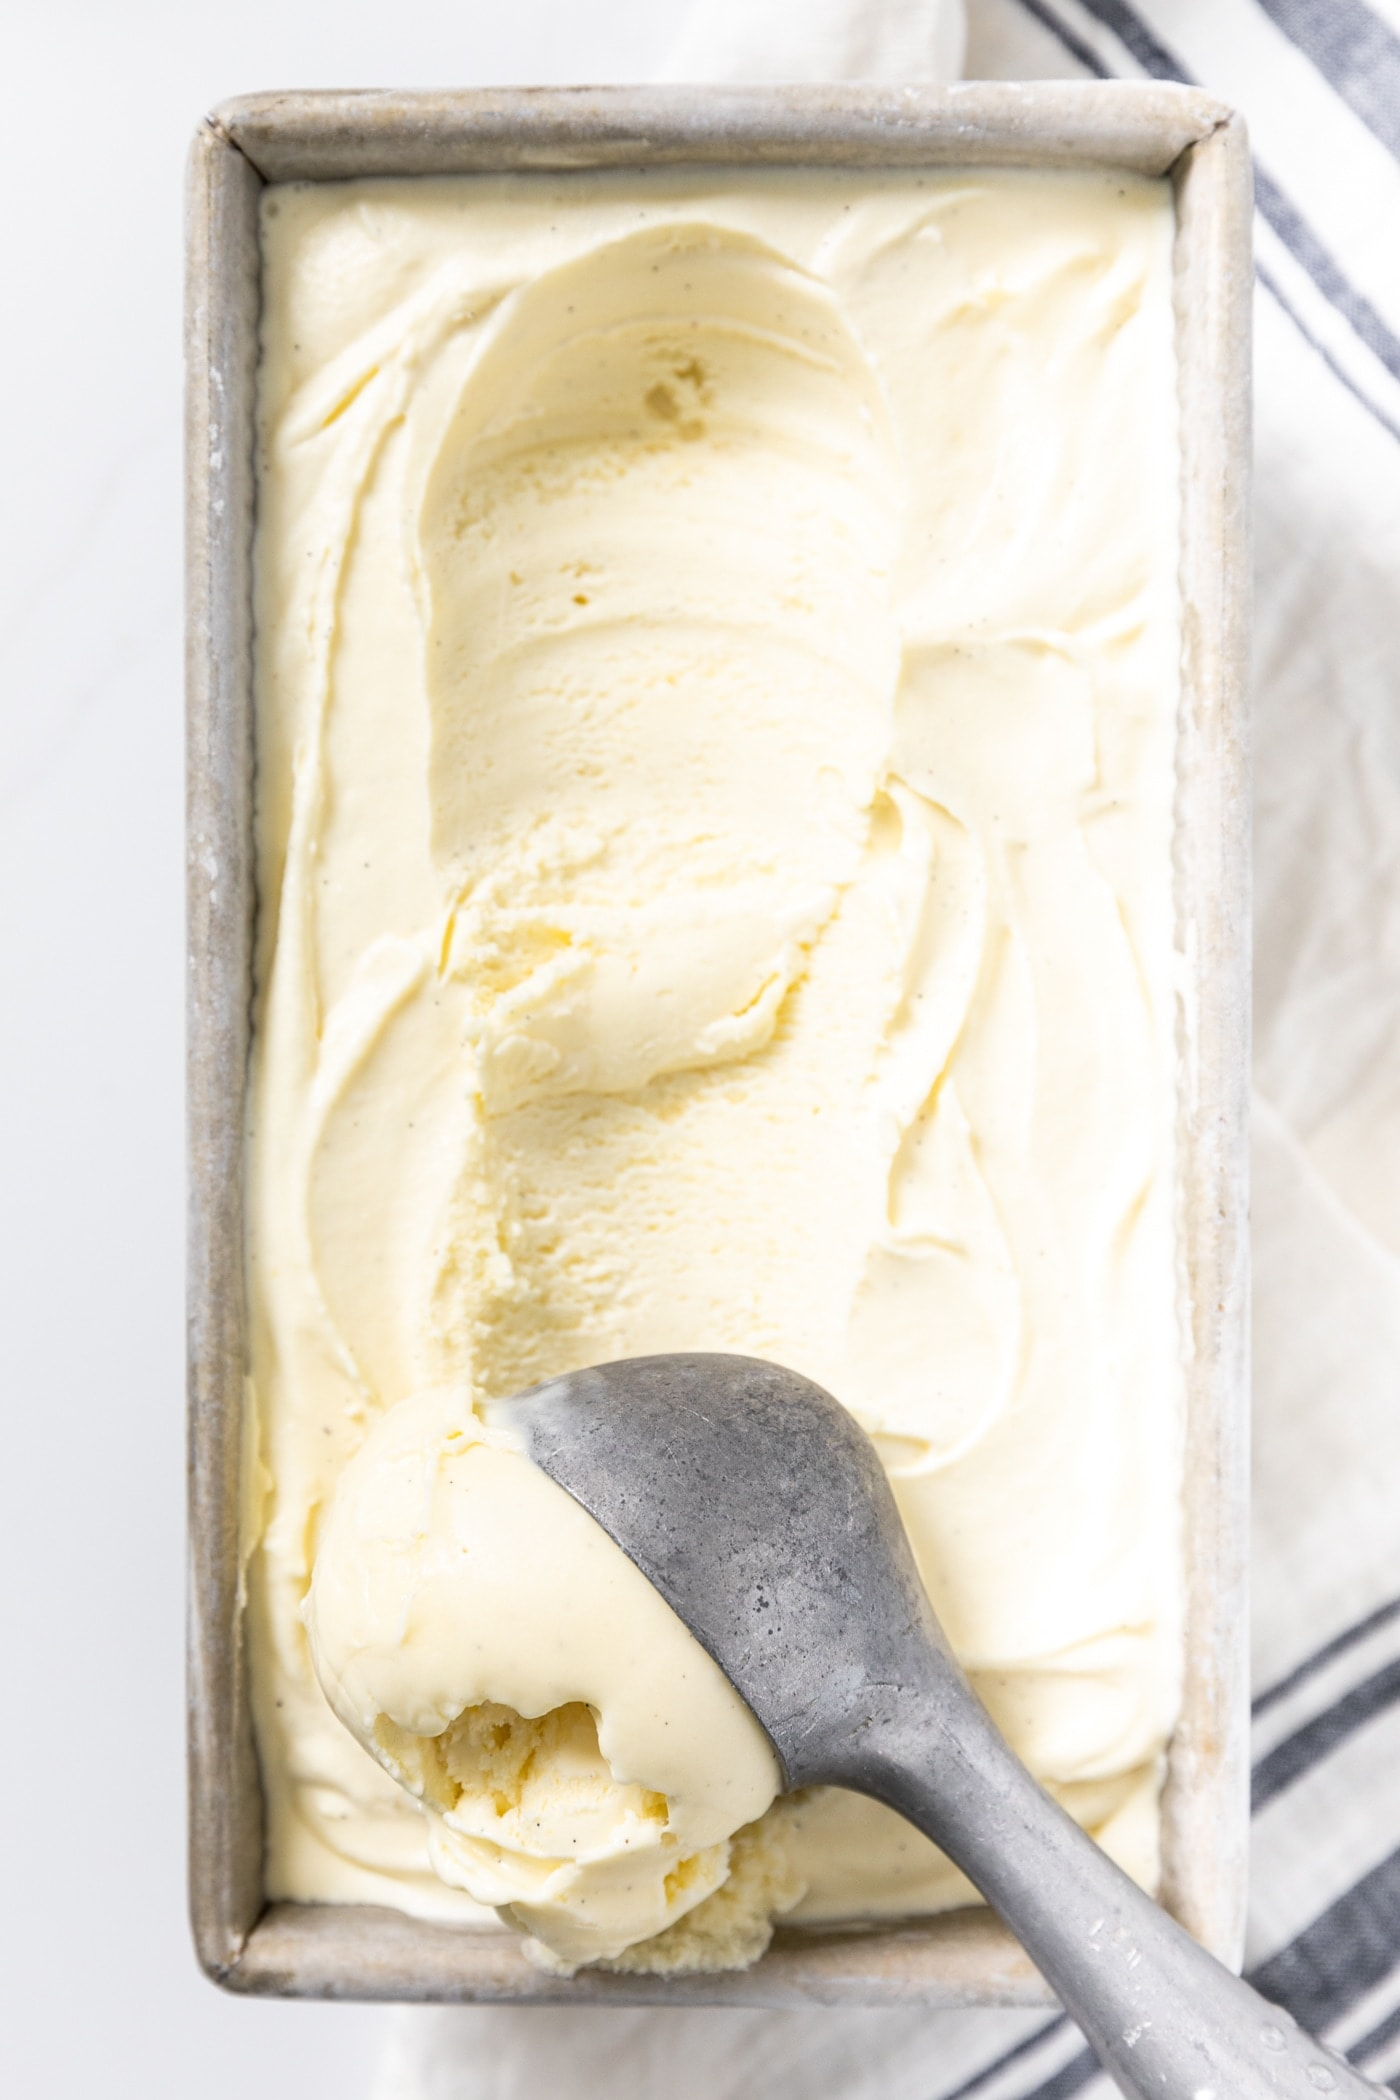 Close up view of ice cream scoop scooping vanilla ice cream from silver container in which it was frozen